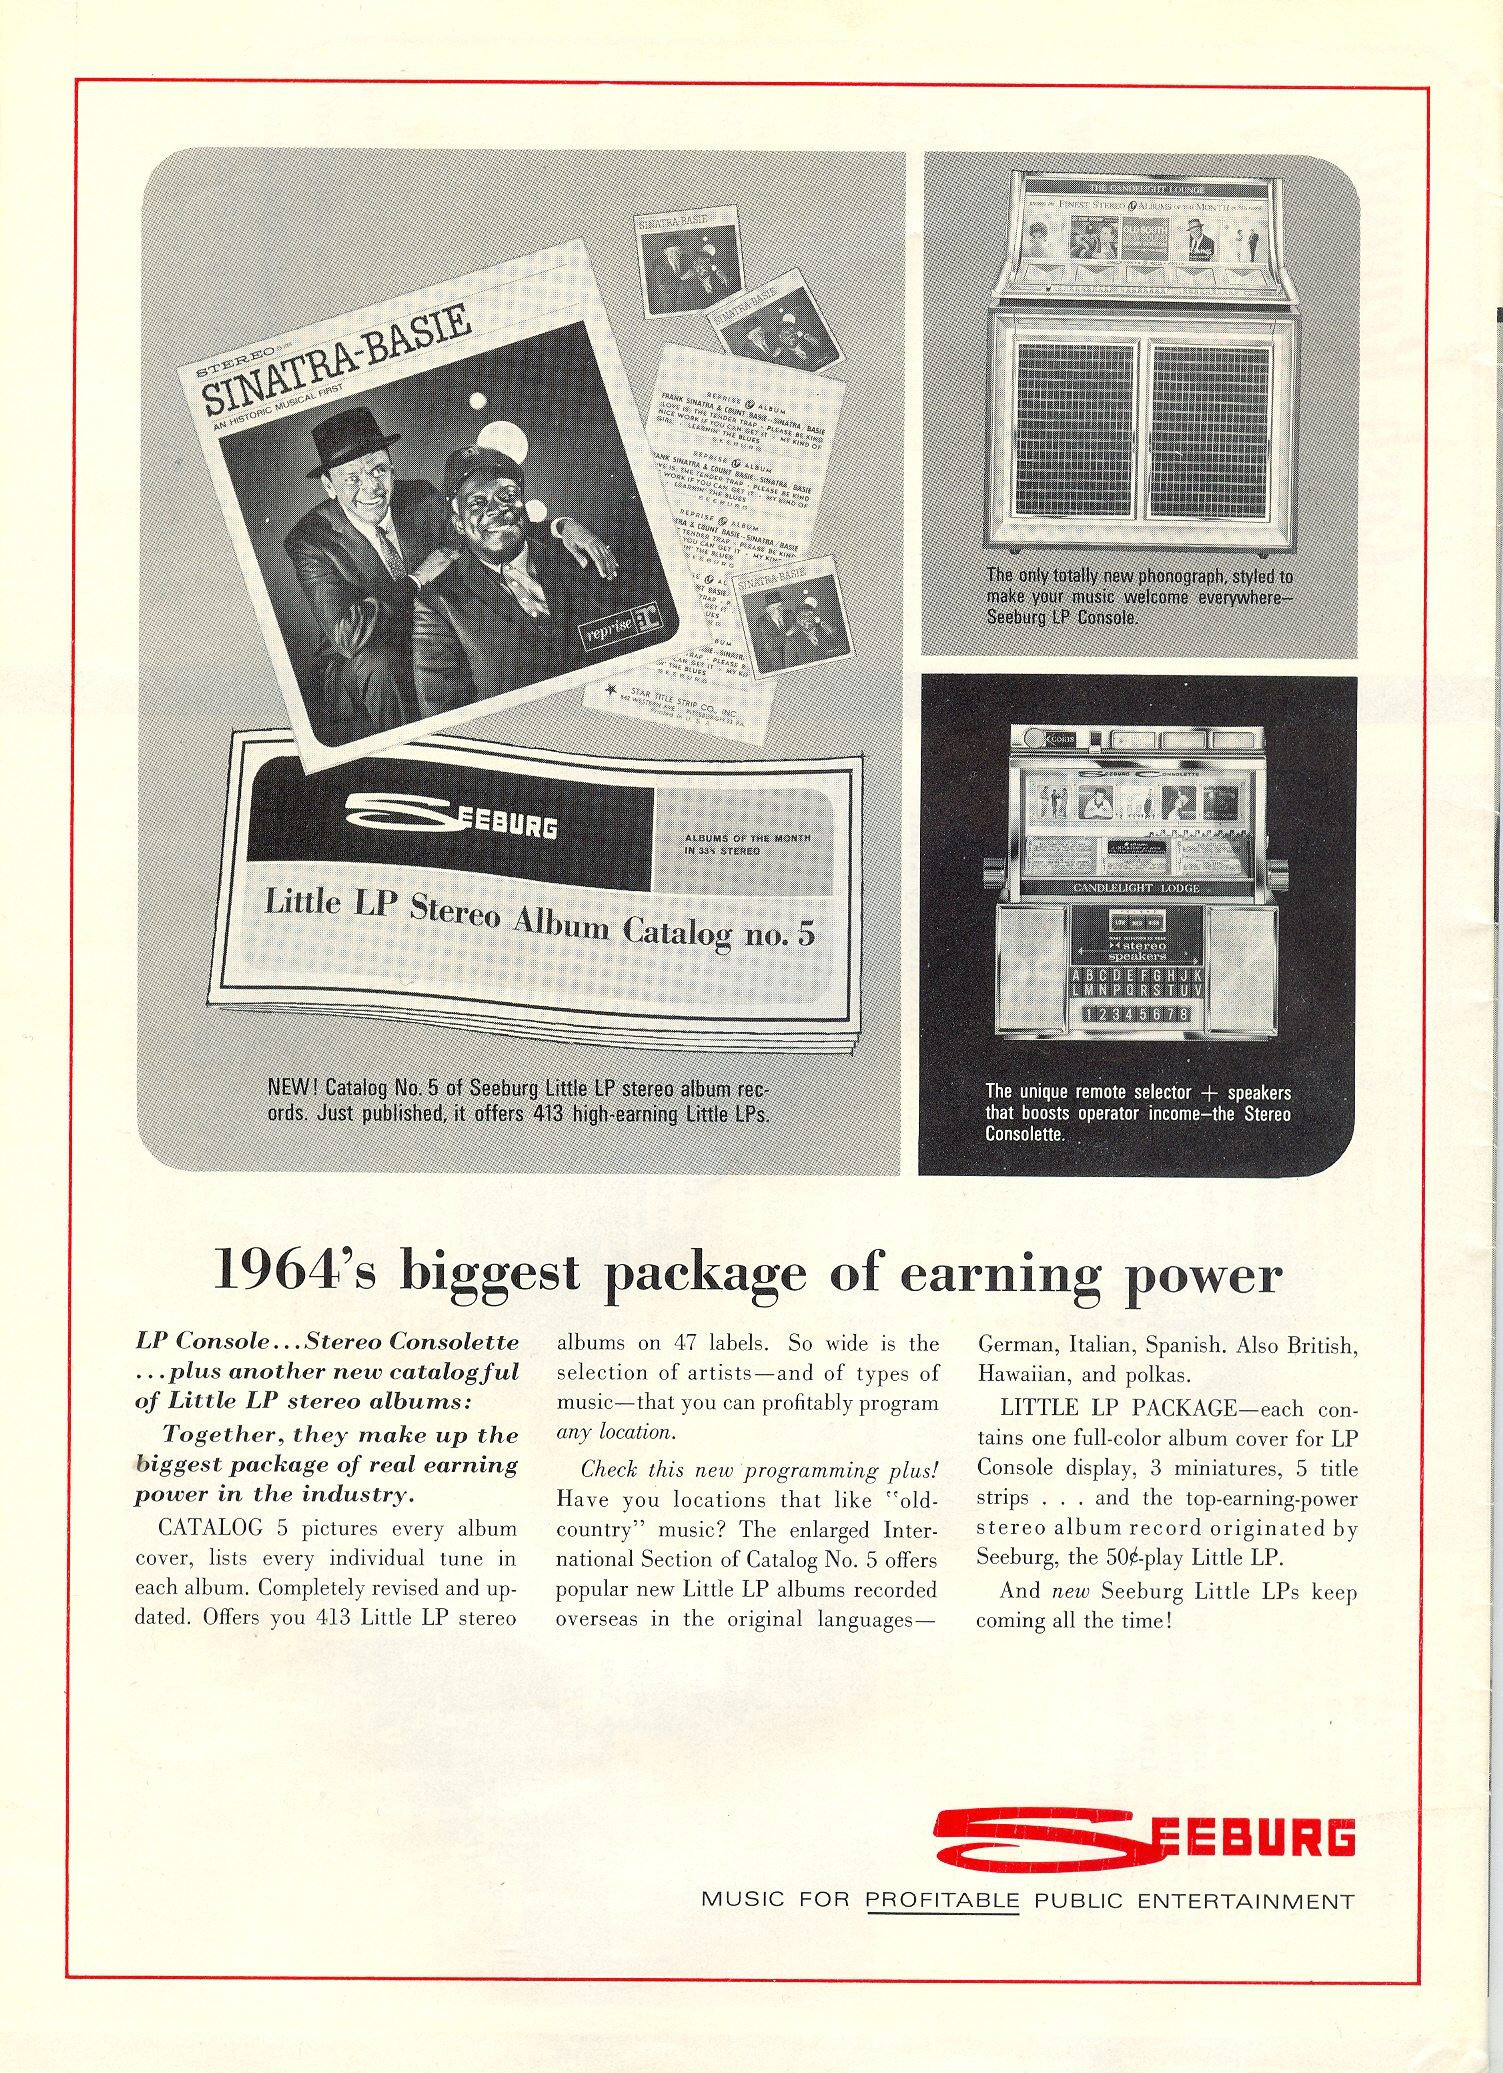 1964 LPC1 Earning Package.jpg